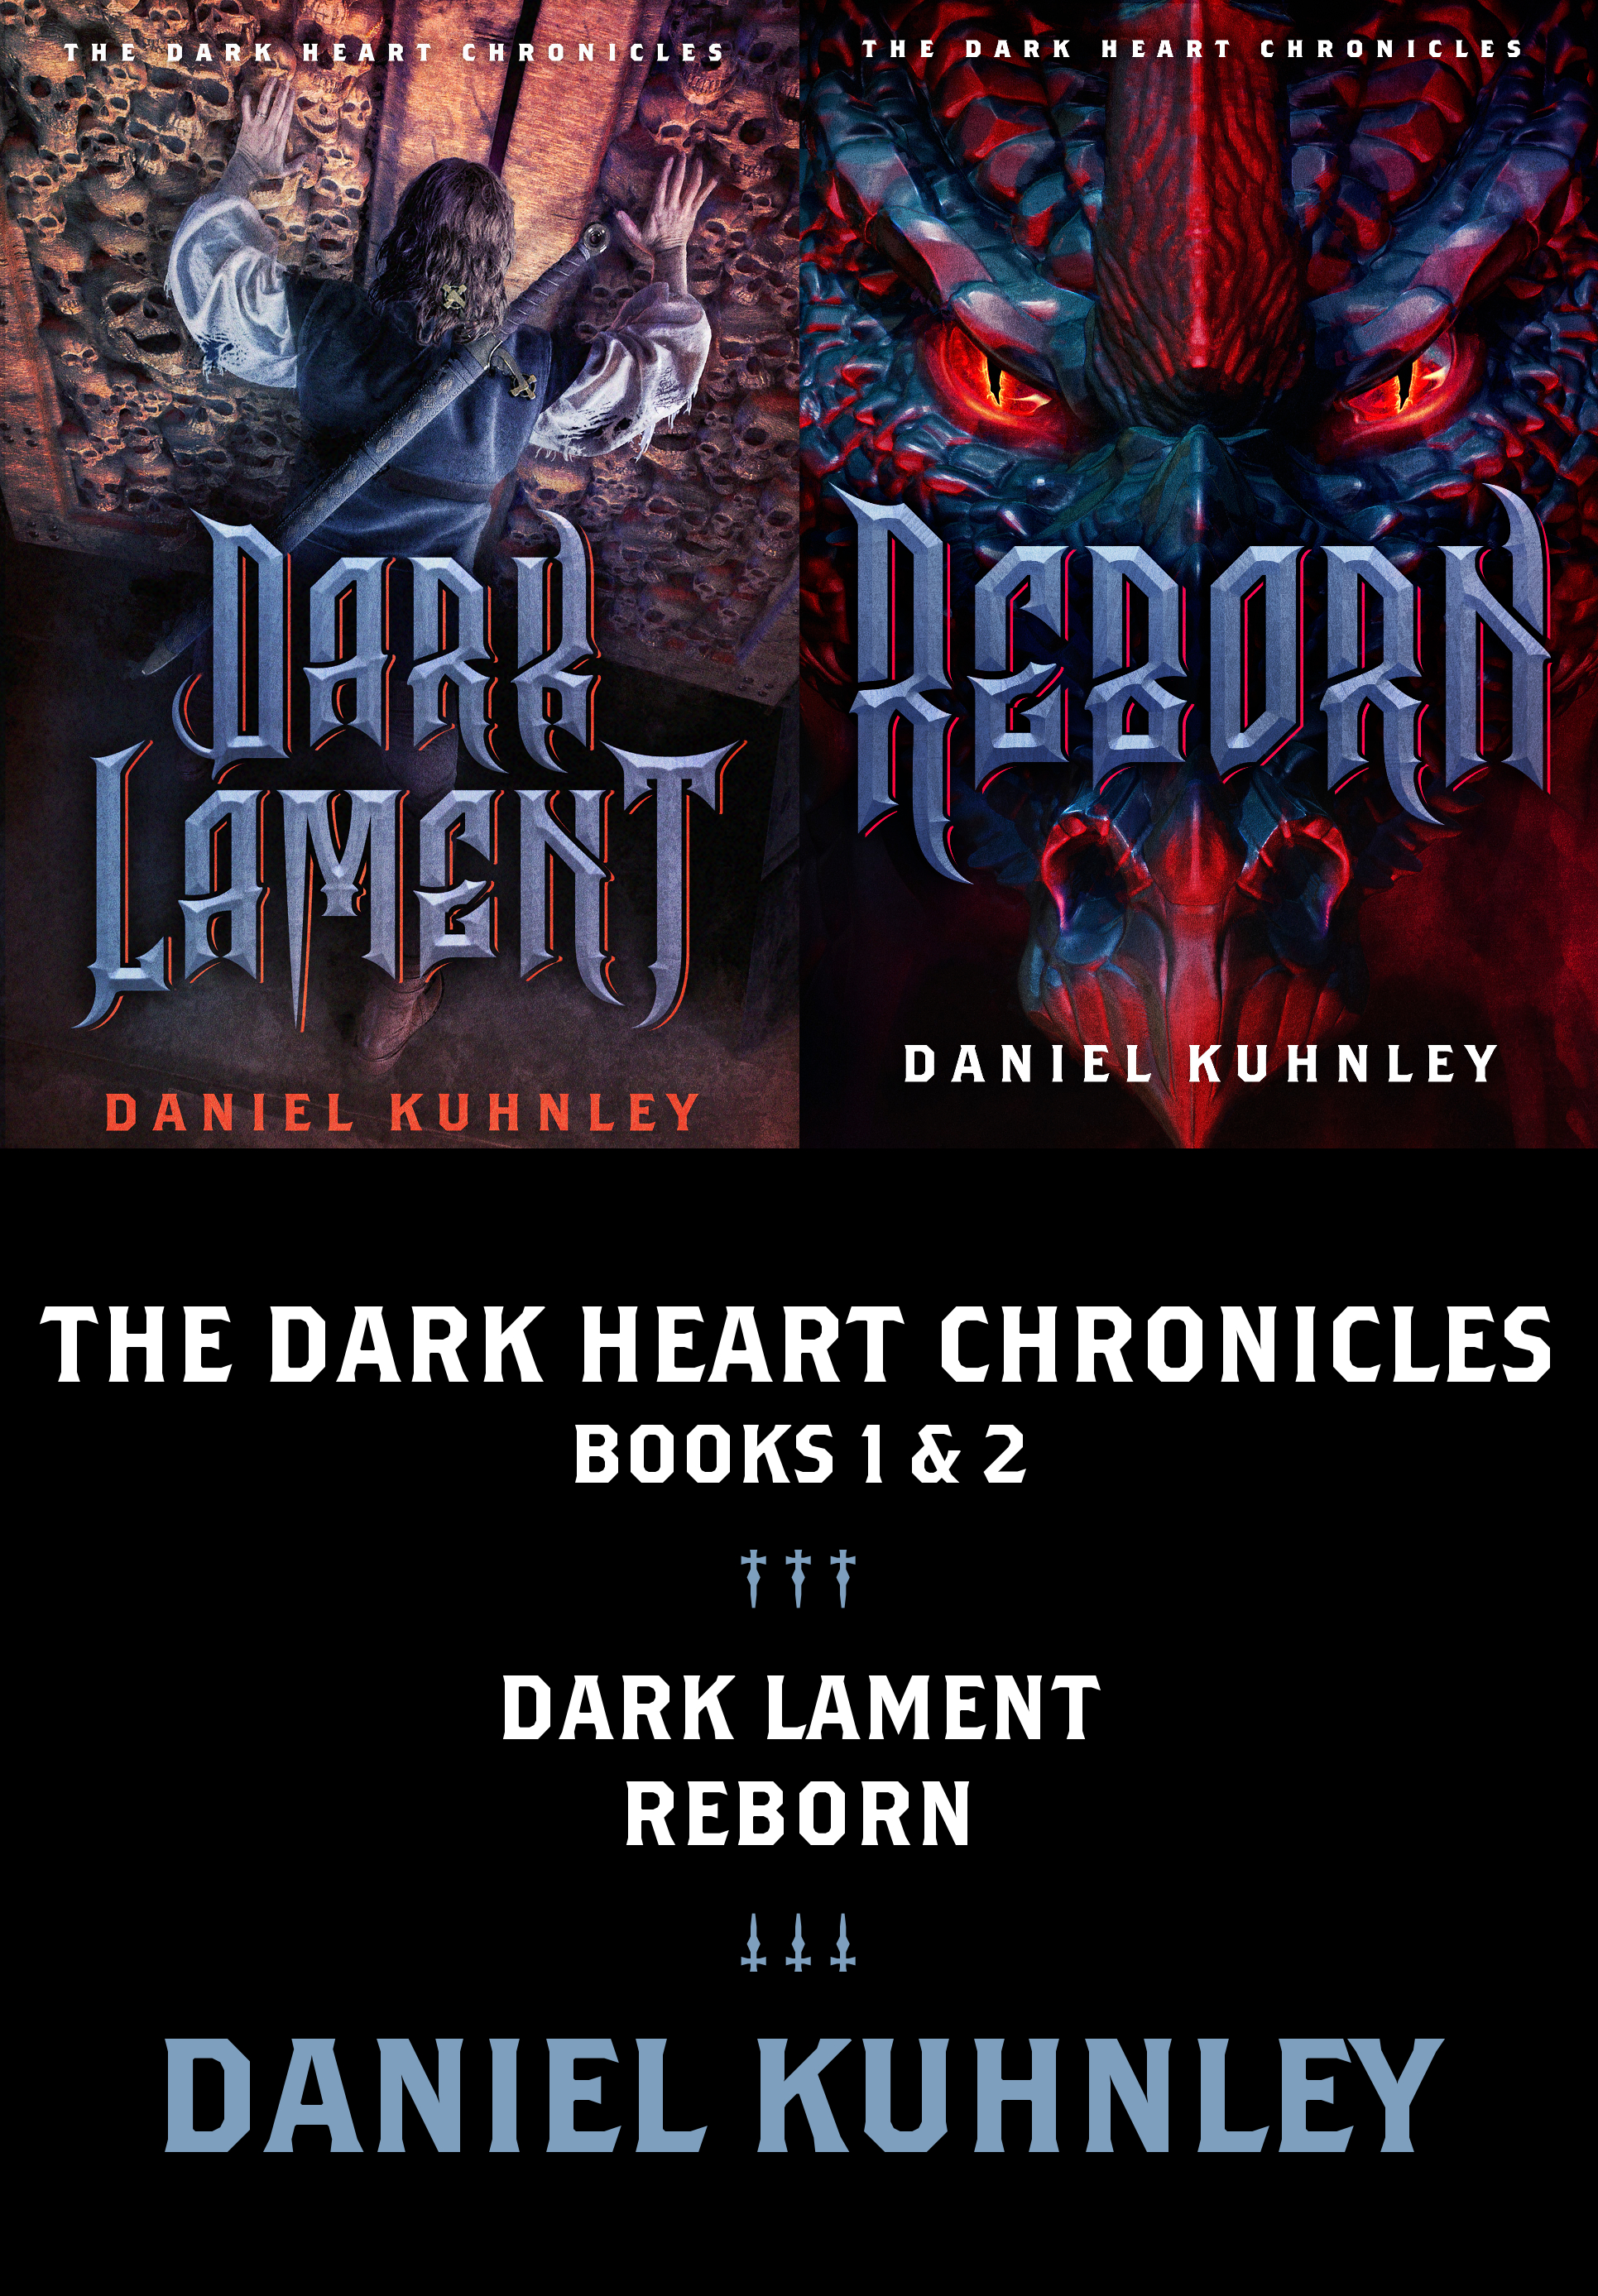 The Dark Heart Chronicles Collection 1